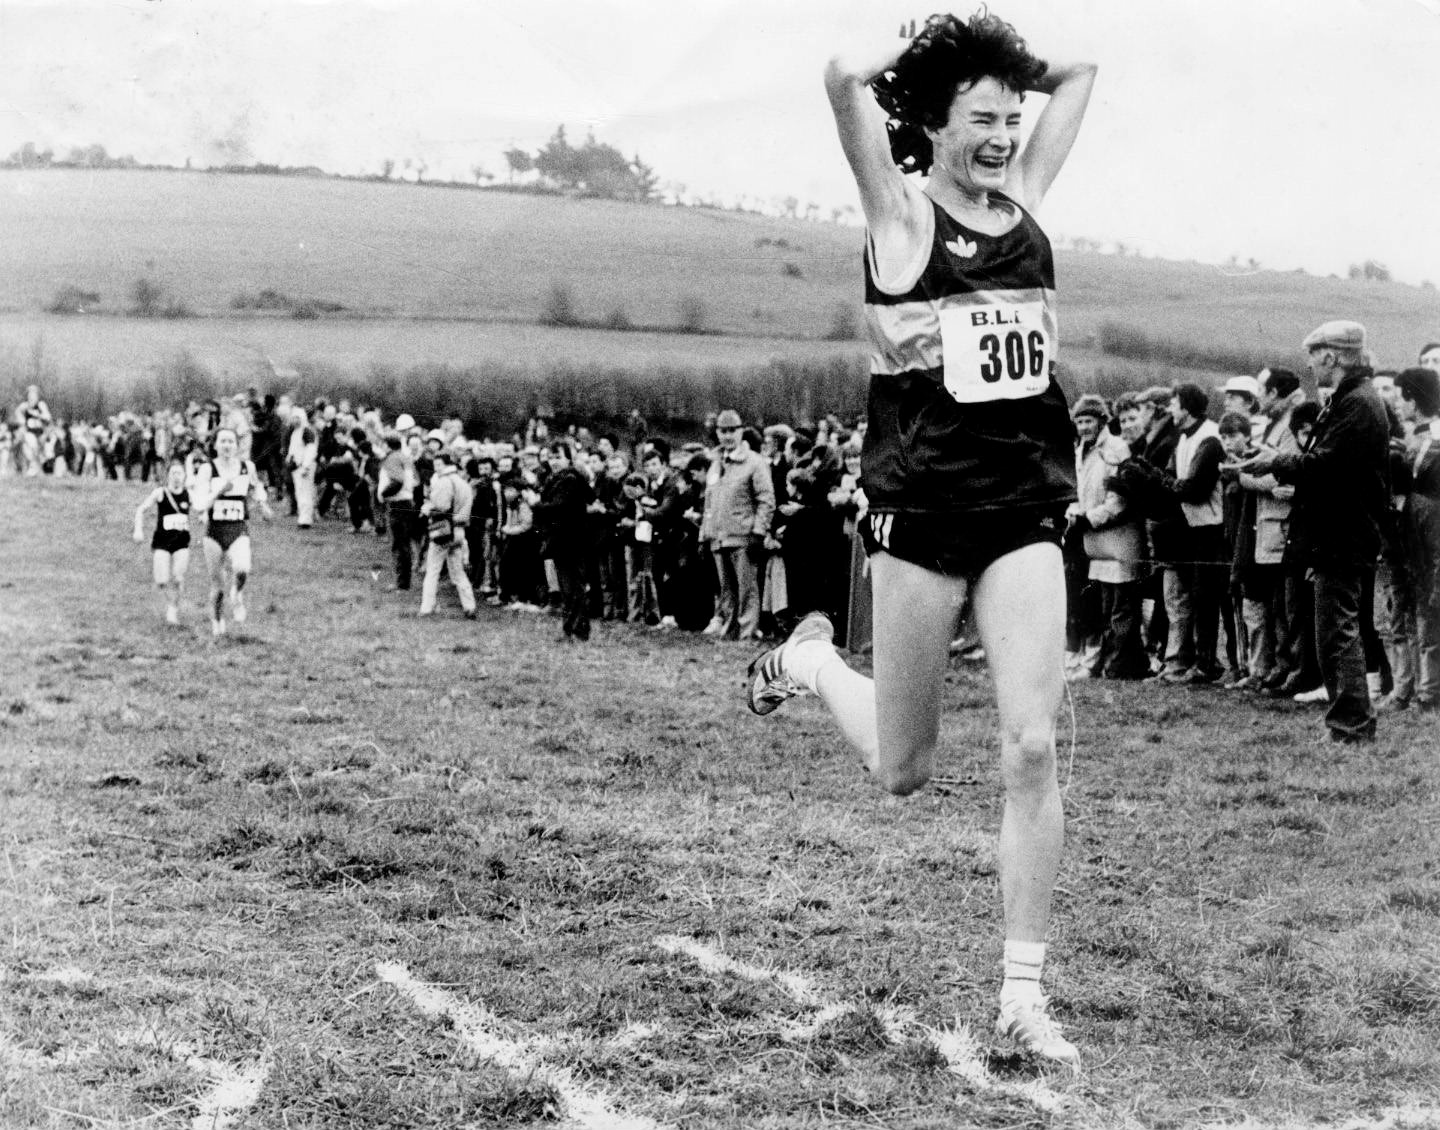 O'Sullivan holds the distinction of being Ireland's most successful female athlete of all time, having won double gold at the 1998 cross country championships and a silver medal in the 2000 Olympics in the 5000m. At the 2012 Olympics, O'Sullivan served as the Chef de Mission for Ireland, preparing young Irish athletes for the unique stressors of competing on an Olympic stage.